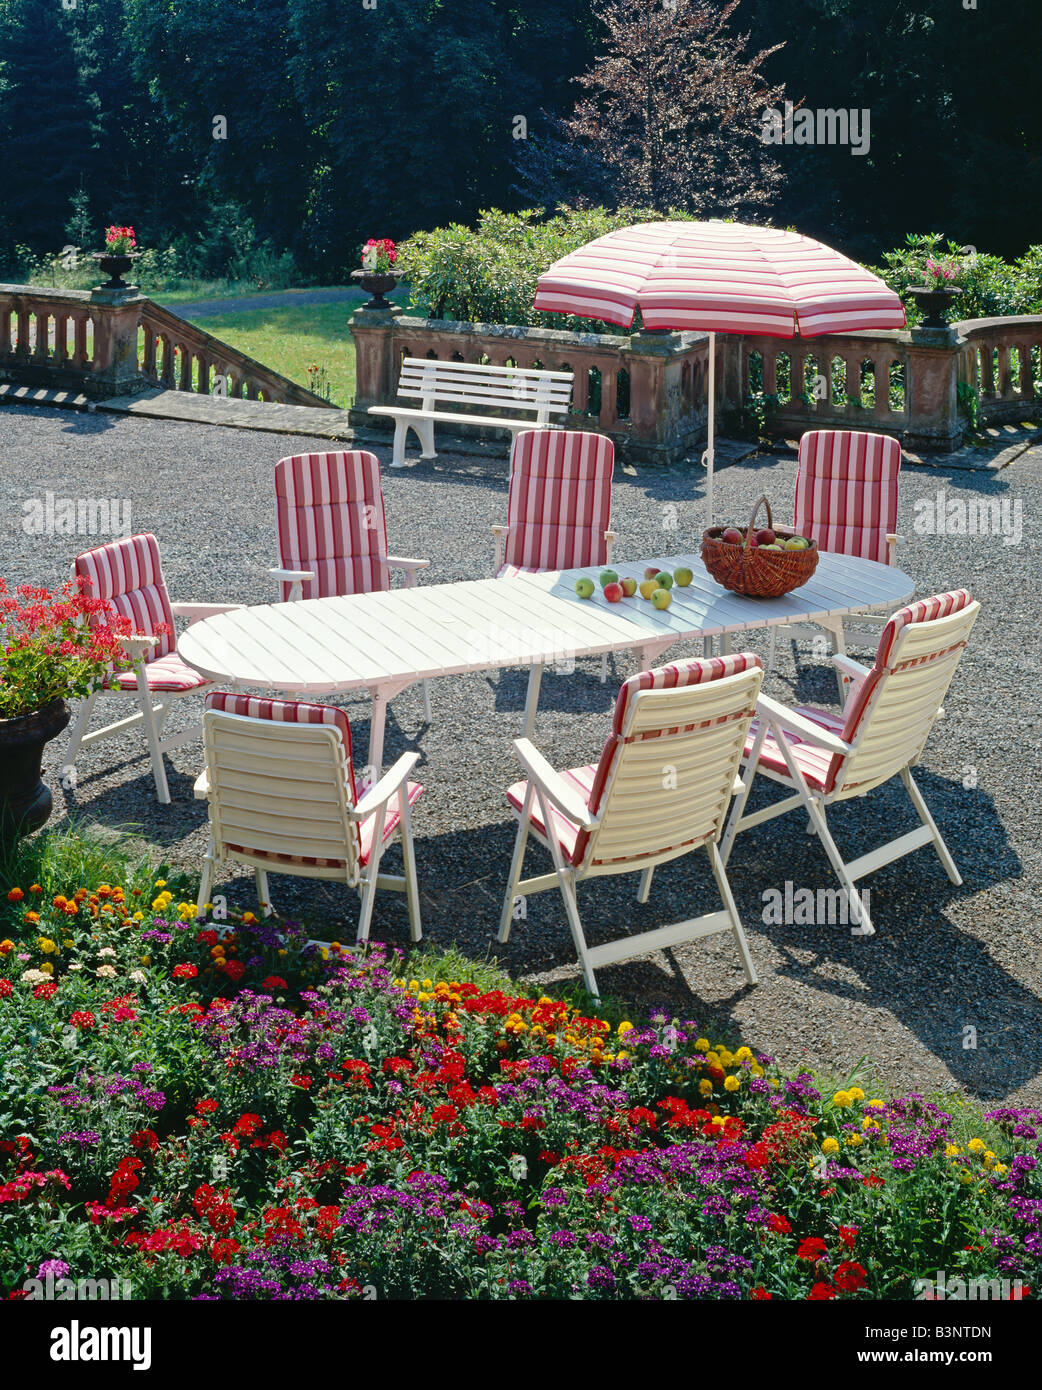 GARDEN FURNITURE ARMCHAIRS AND PARASOL DECORATED WITH PINK STRIPED FABRIC